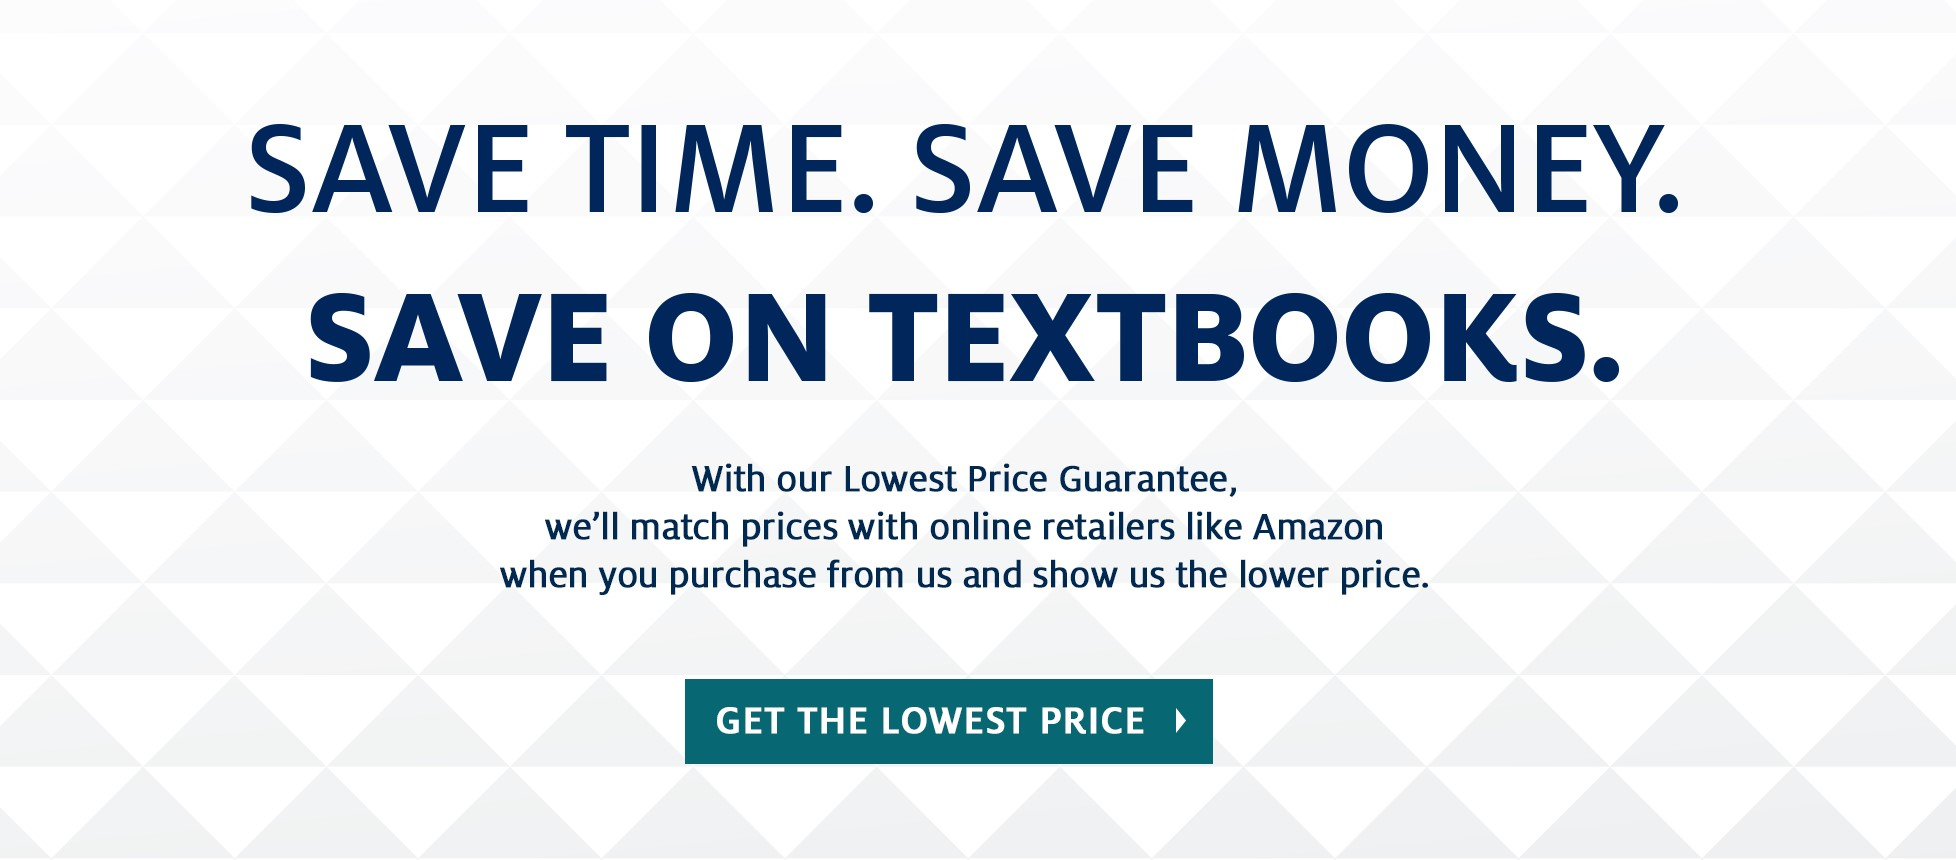 SAVE TIME. SAVE MONEY. SAVE ON TEXTBOOKS.